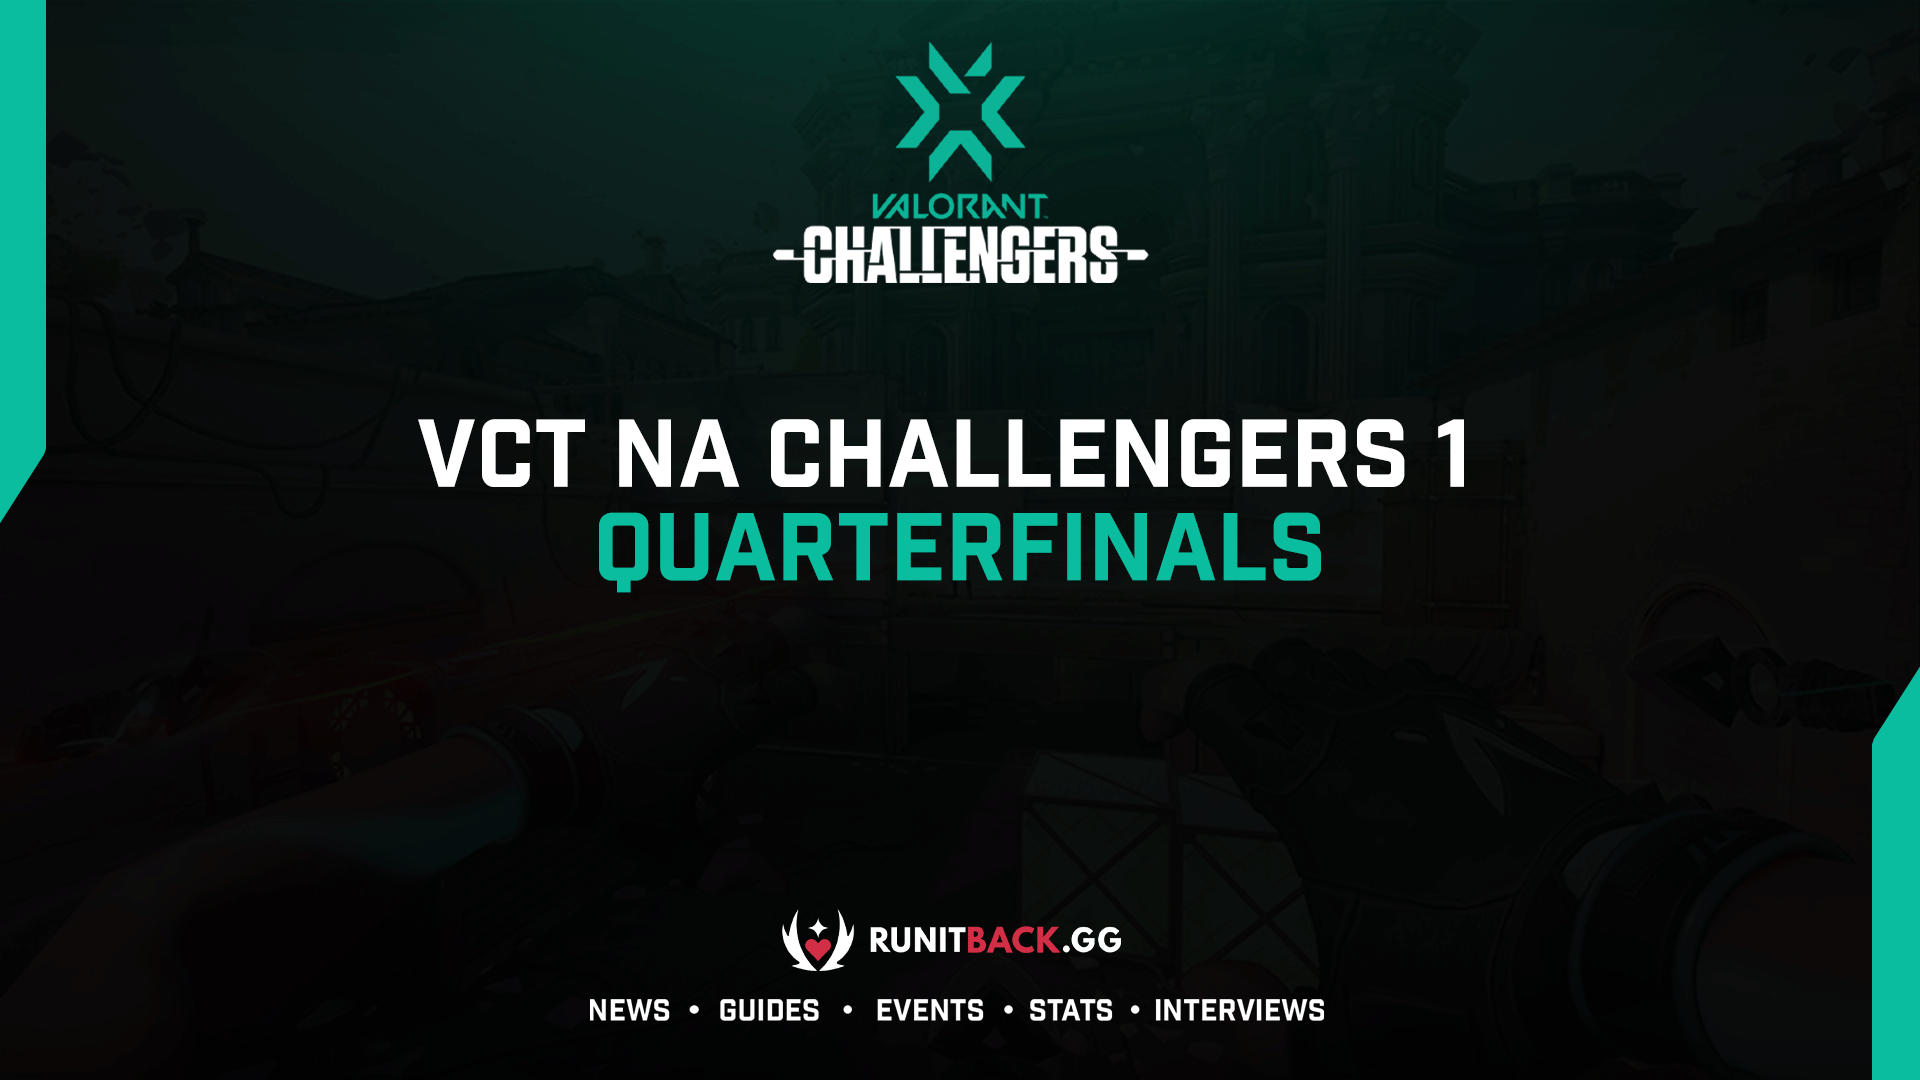 VCT NA Challengers 1 Qualifier: Quarterfinals Results